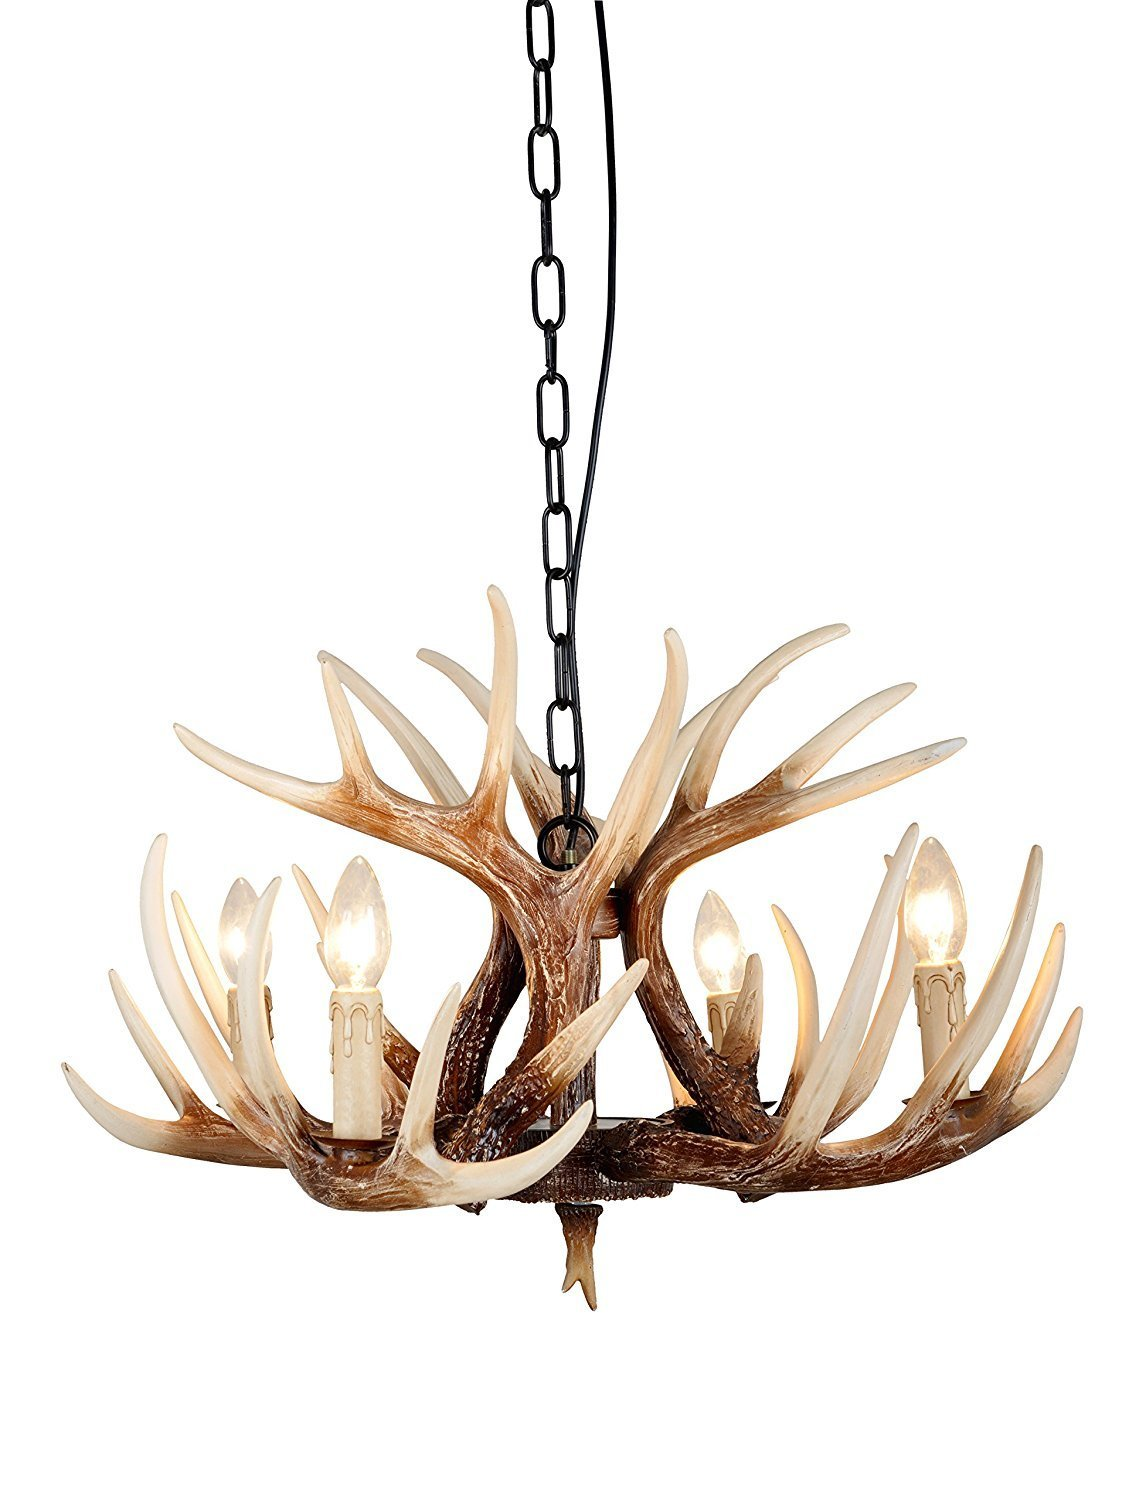 Vintage Style Resin Deer Horn Antler Chandeliers,4 Lights